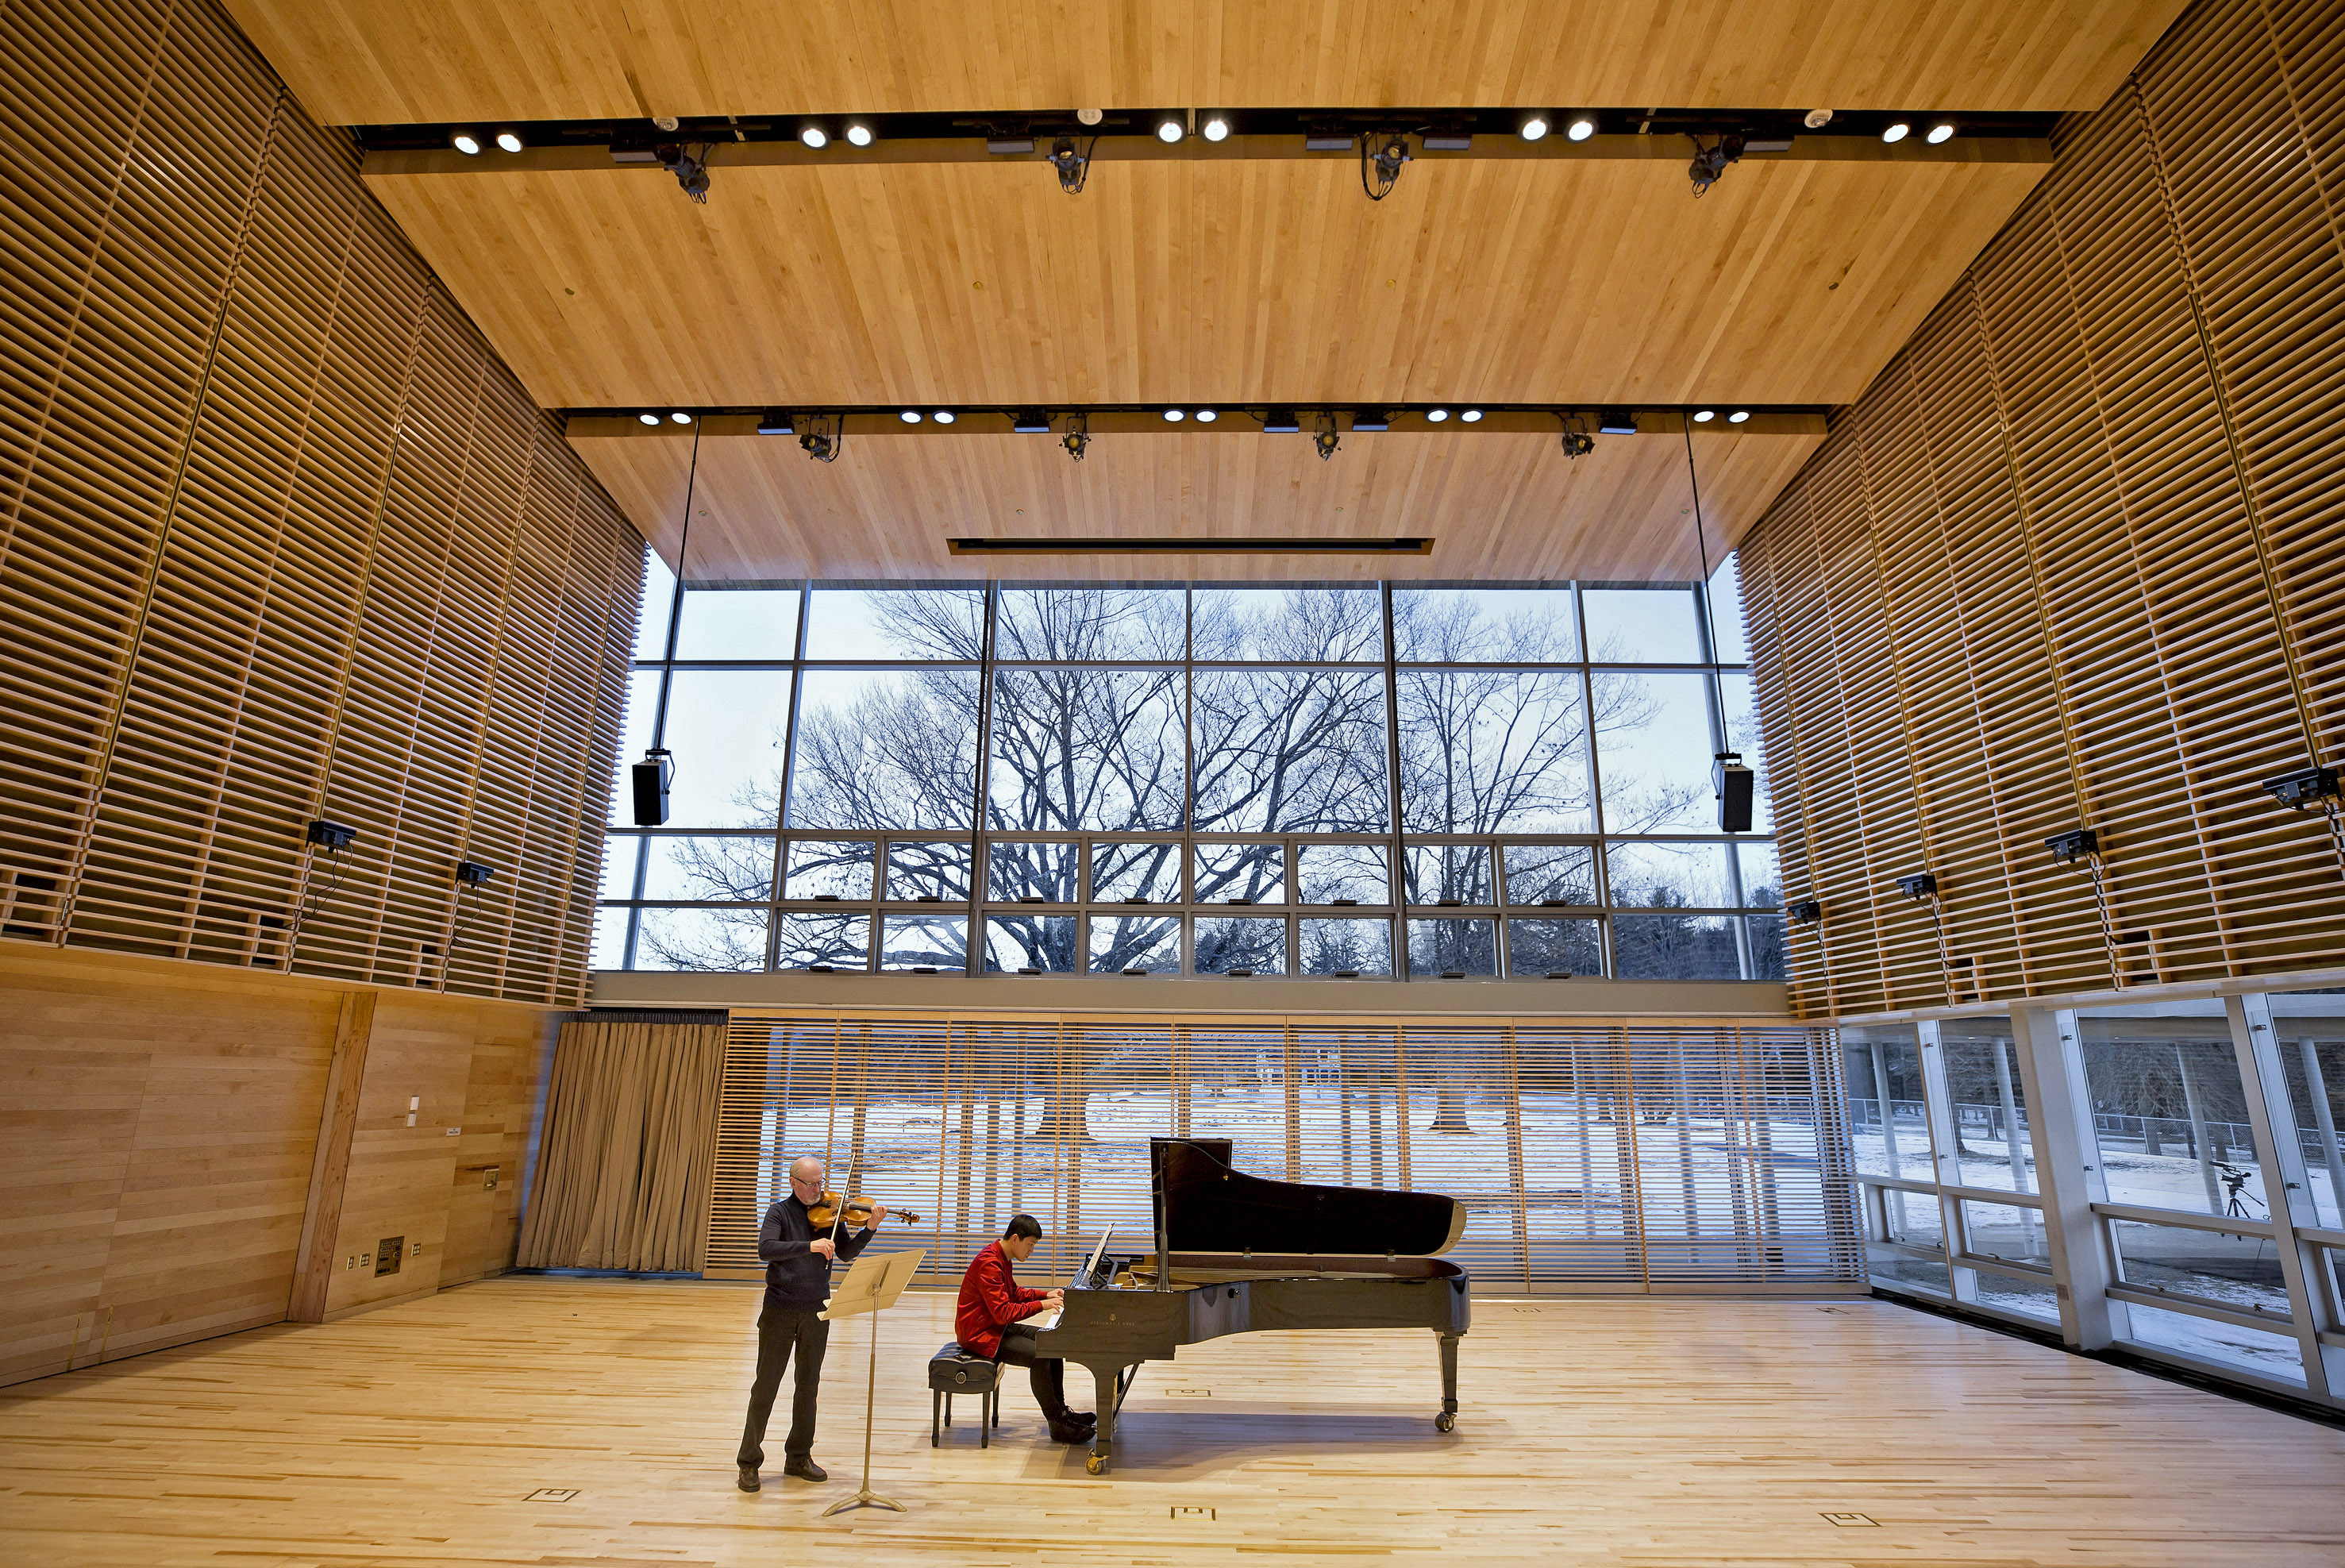 Opening in June 2019 Tanglewood's new Linde Center for Music and Learning, home to the new Tanglewood Learning Institute and its 140 programs. Photo: Winslow Townson.